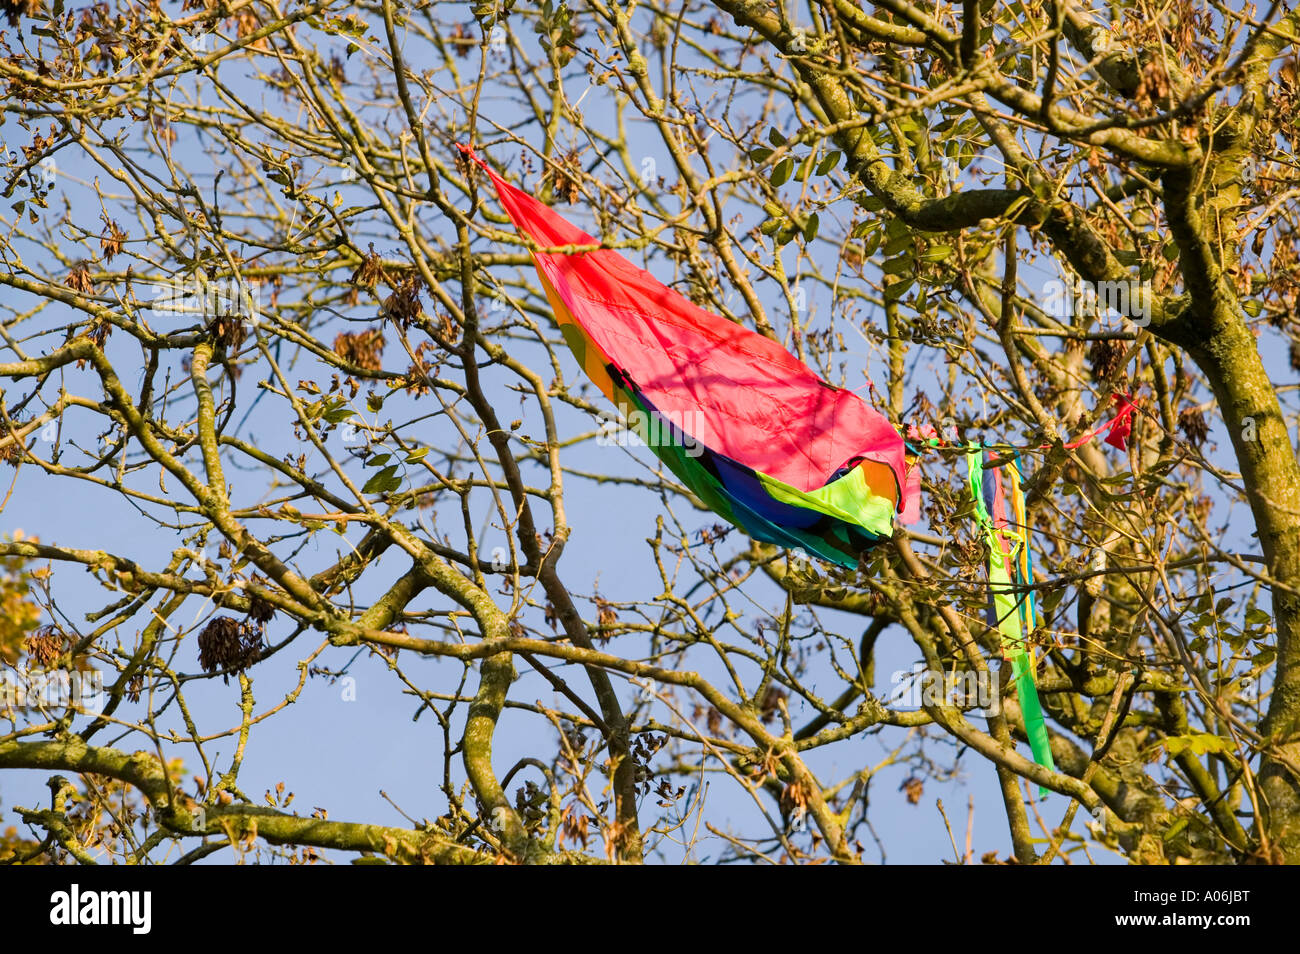 a kite stuck in a tree Stock Photo: 9897131 - Alamy